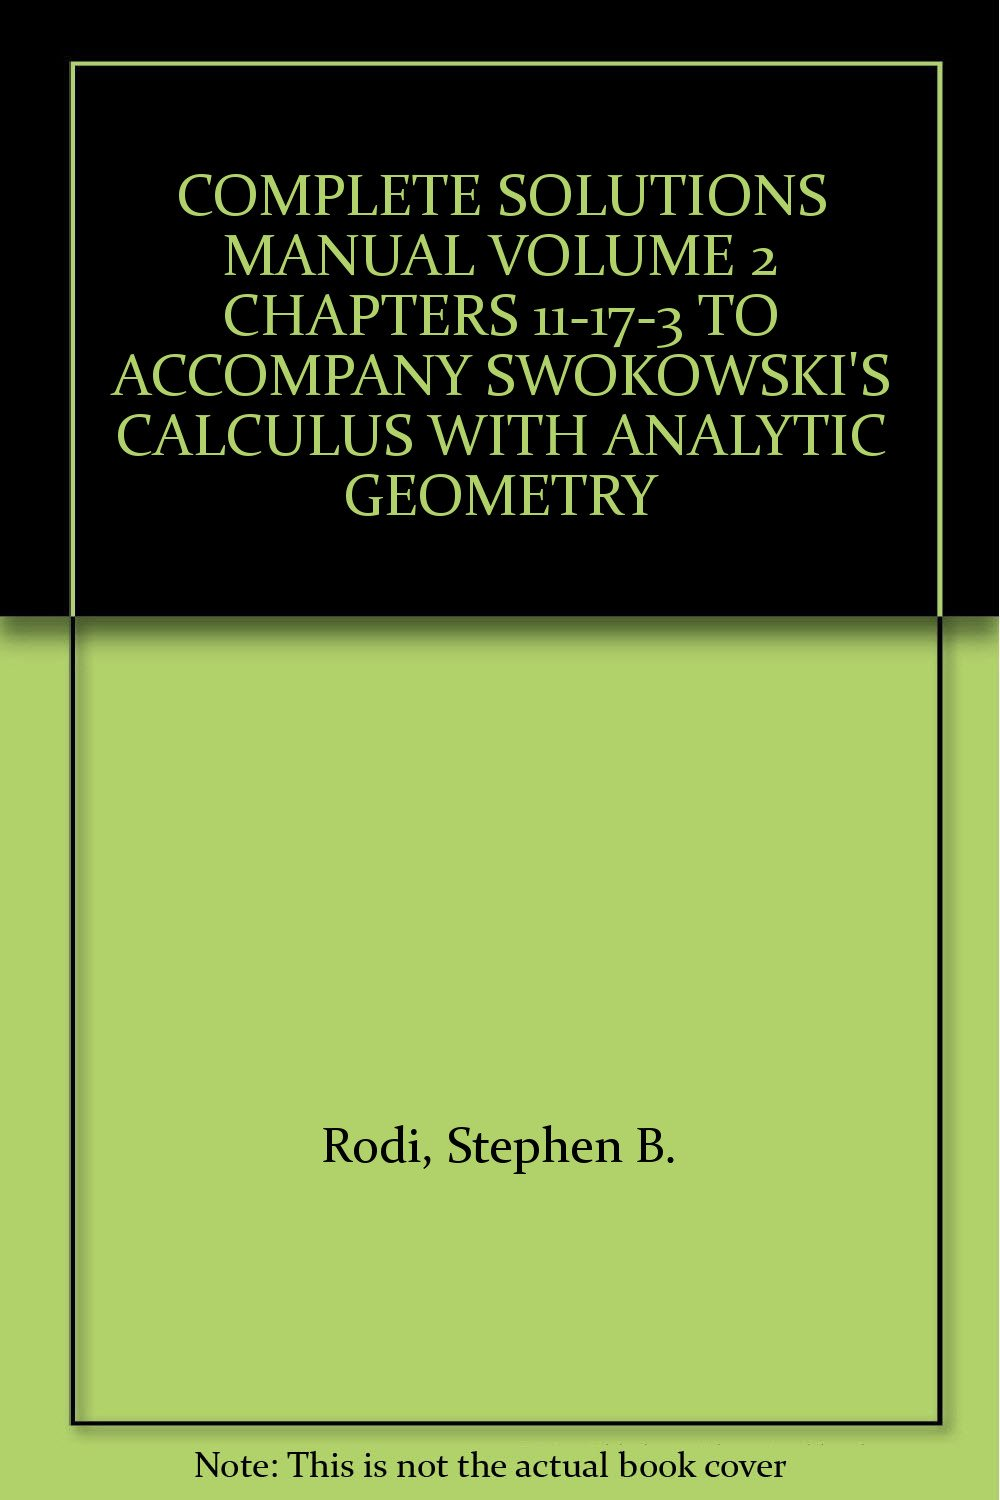 COMPLETE SOLUTIONS MANUAL VOLUME 2 CHAPTERS 11-17-3 TO ACCOMPANY SWOKOWSKI'S  CALCULUS WITH ANALYTIC GEOMETRY: Stephen B. Rodi: Amazon.com: Books